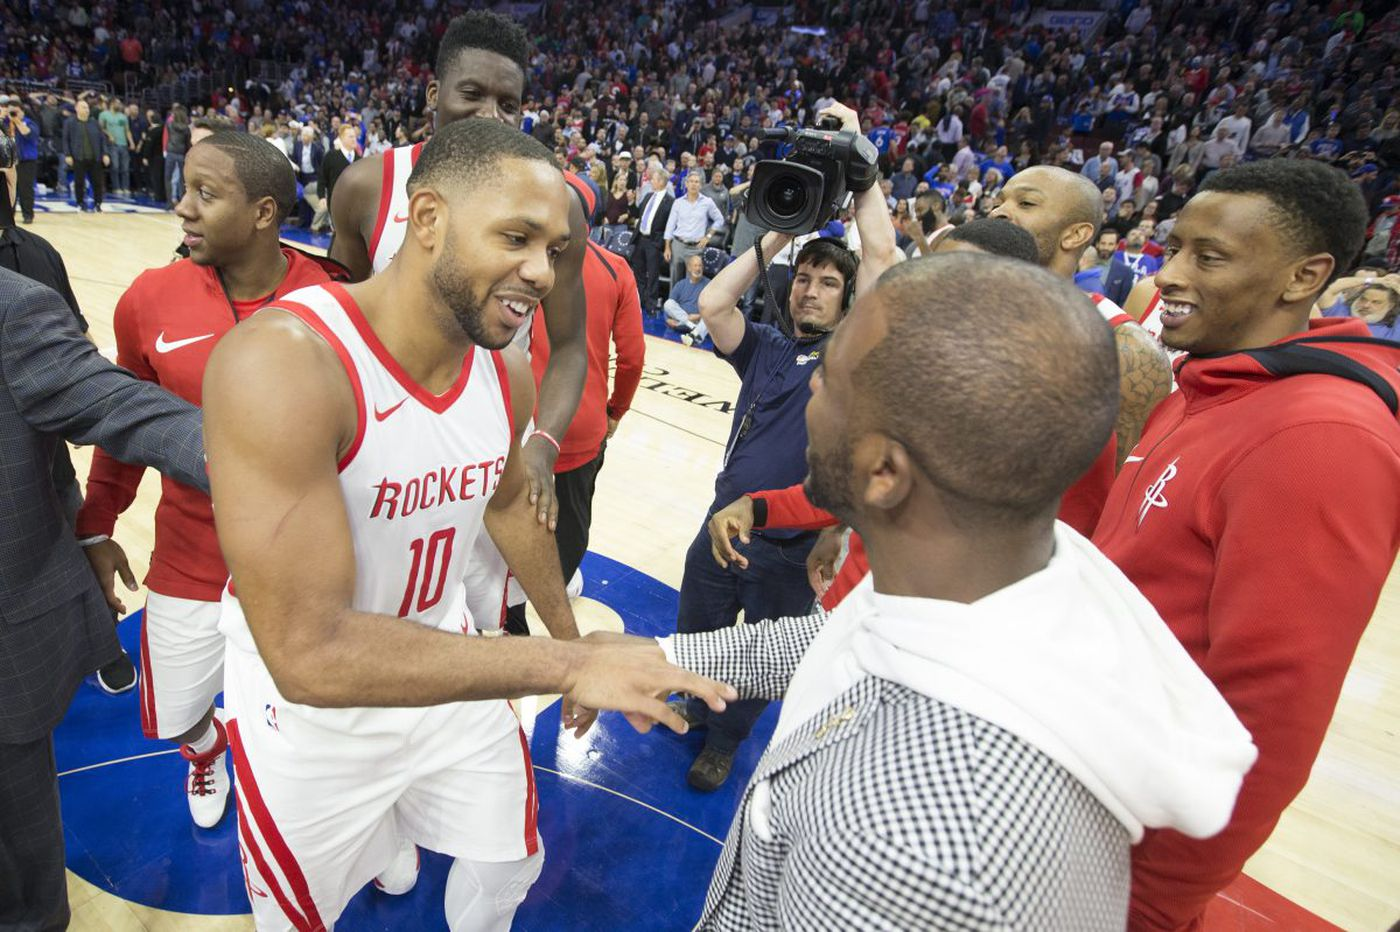 Sixers-Rockets preview: Containing Harden, Gordon is a must